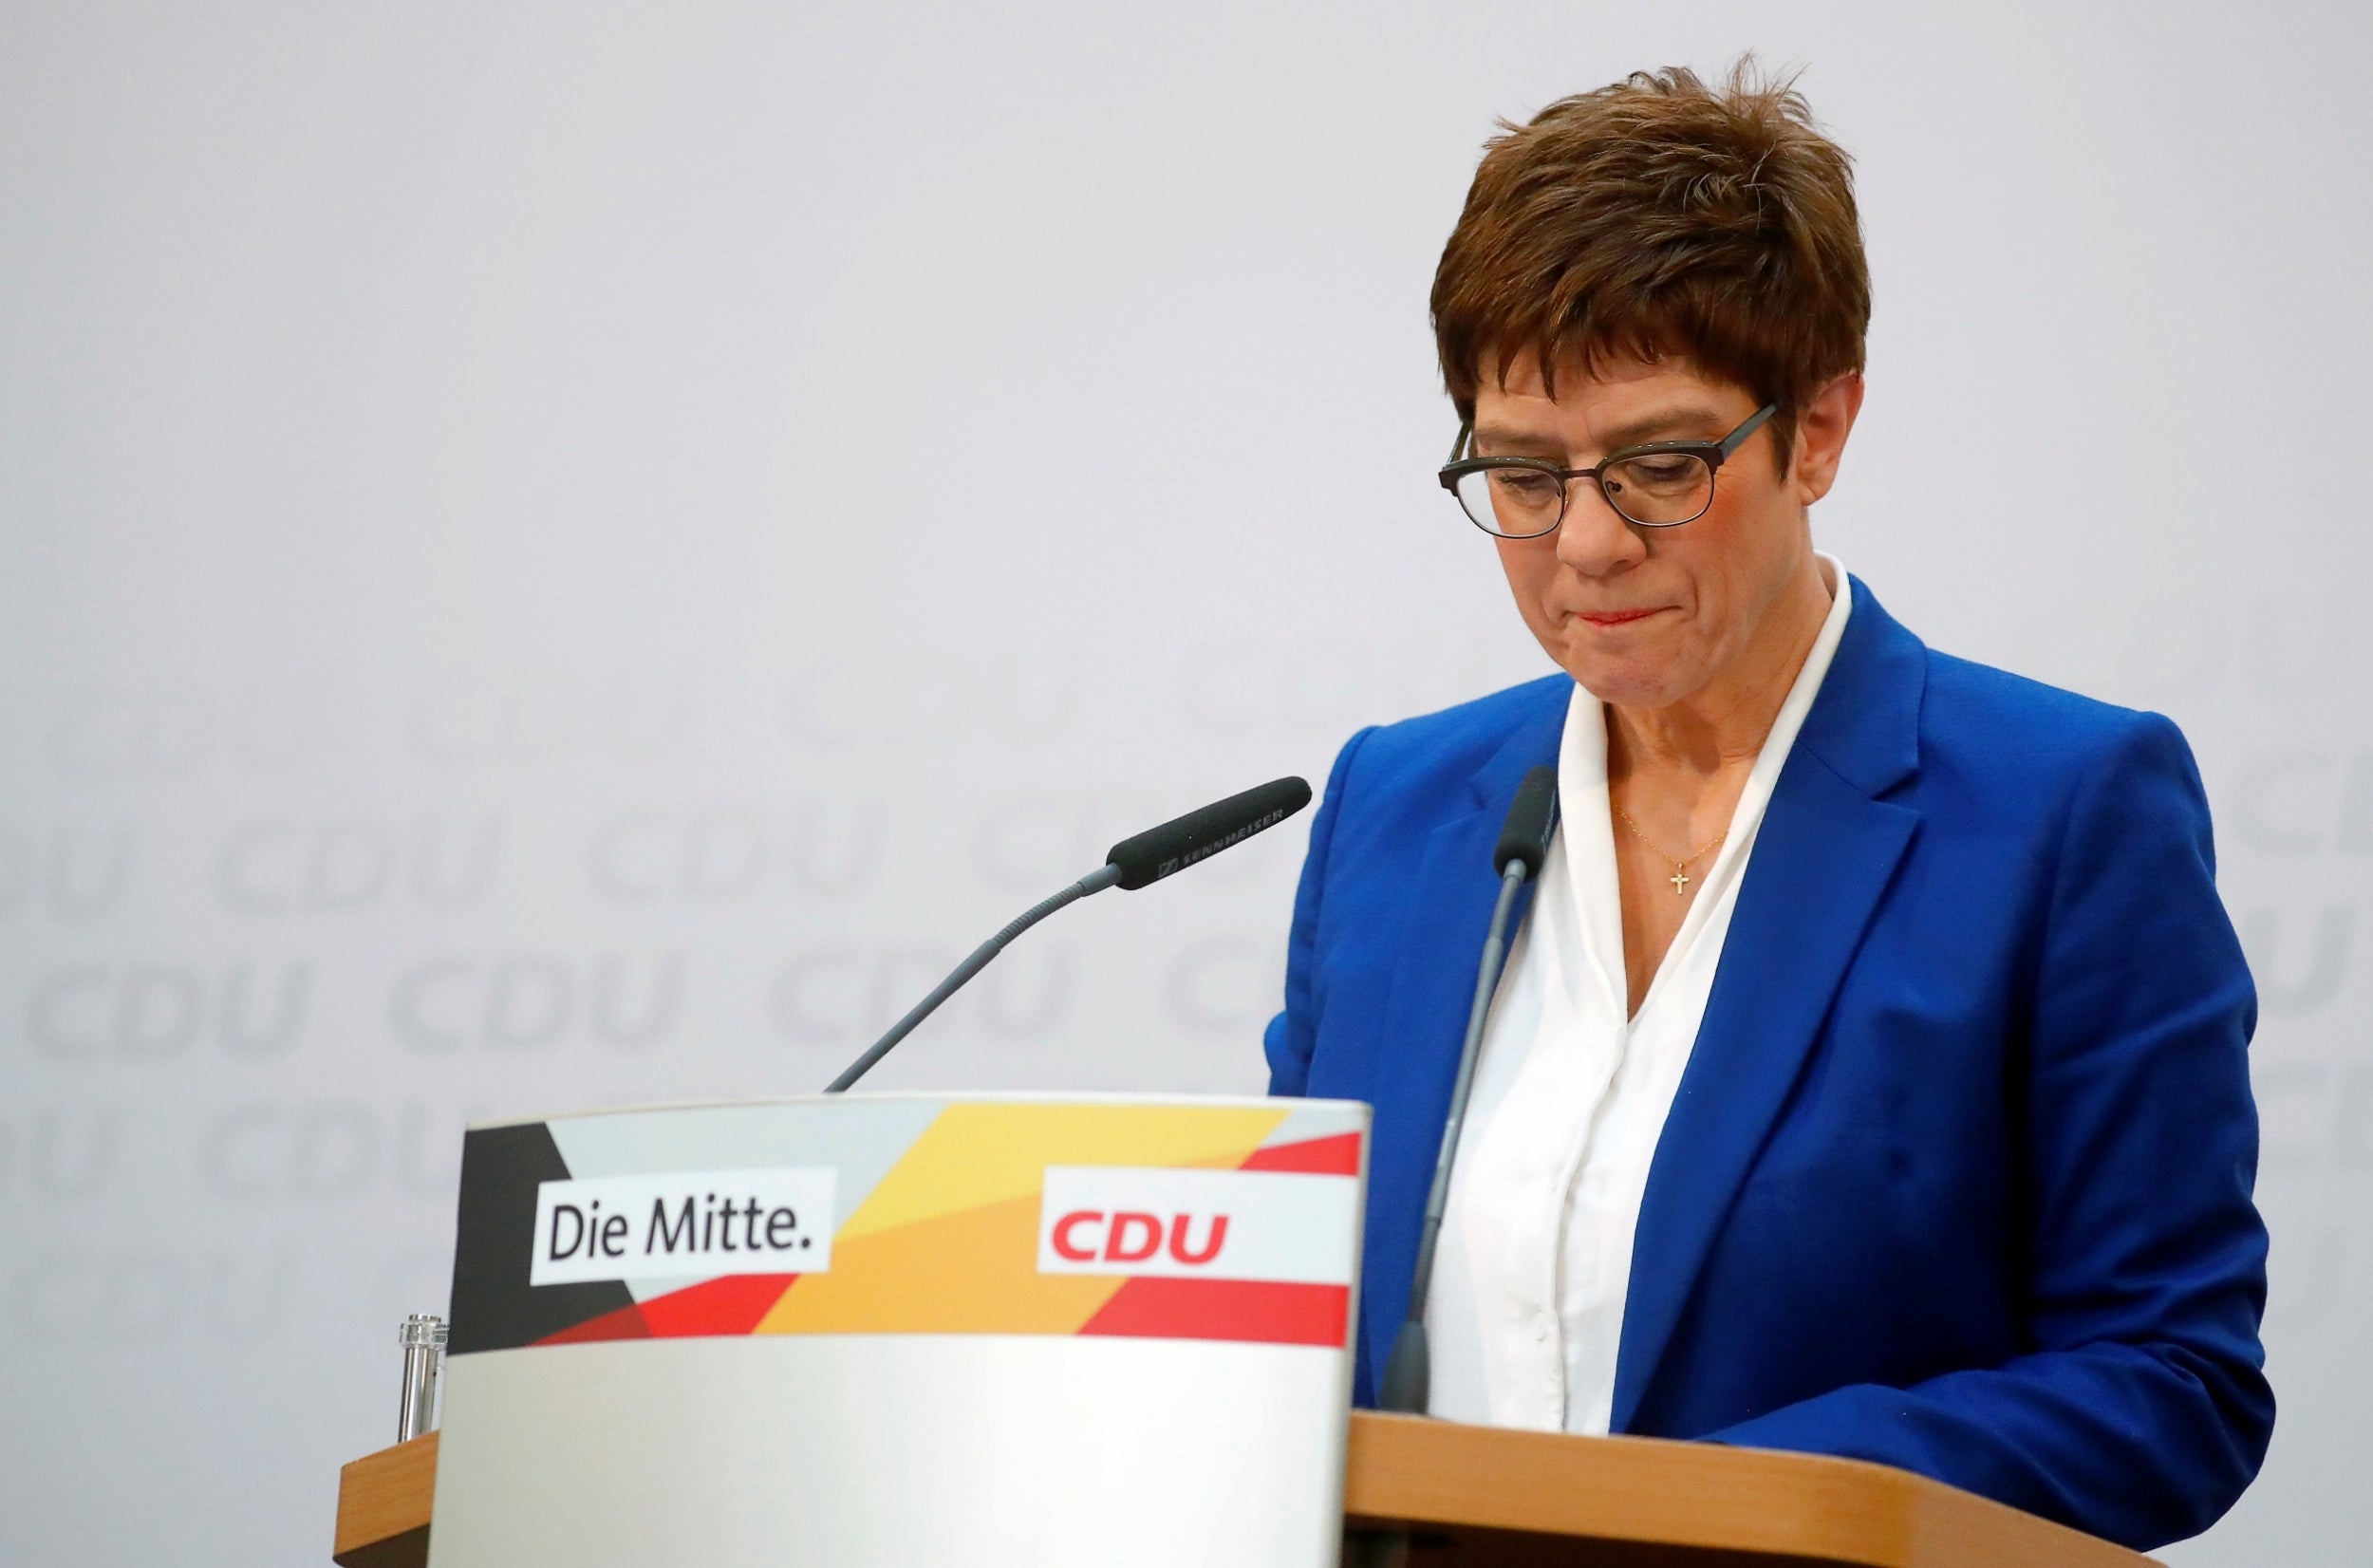 Angela Merkel's planned successor Annegret Kramp-Karrenbauer steps aside amid far-right row